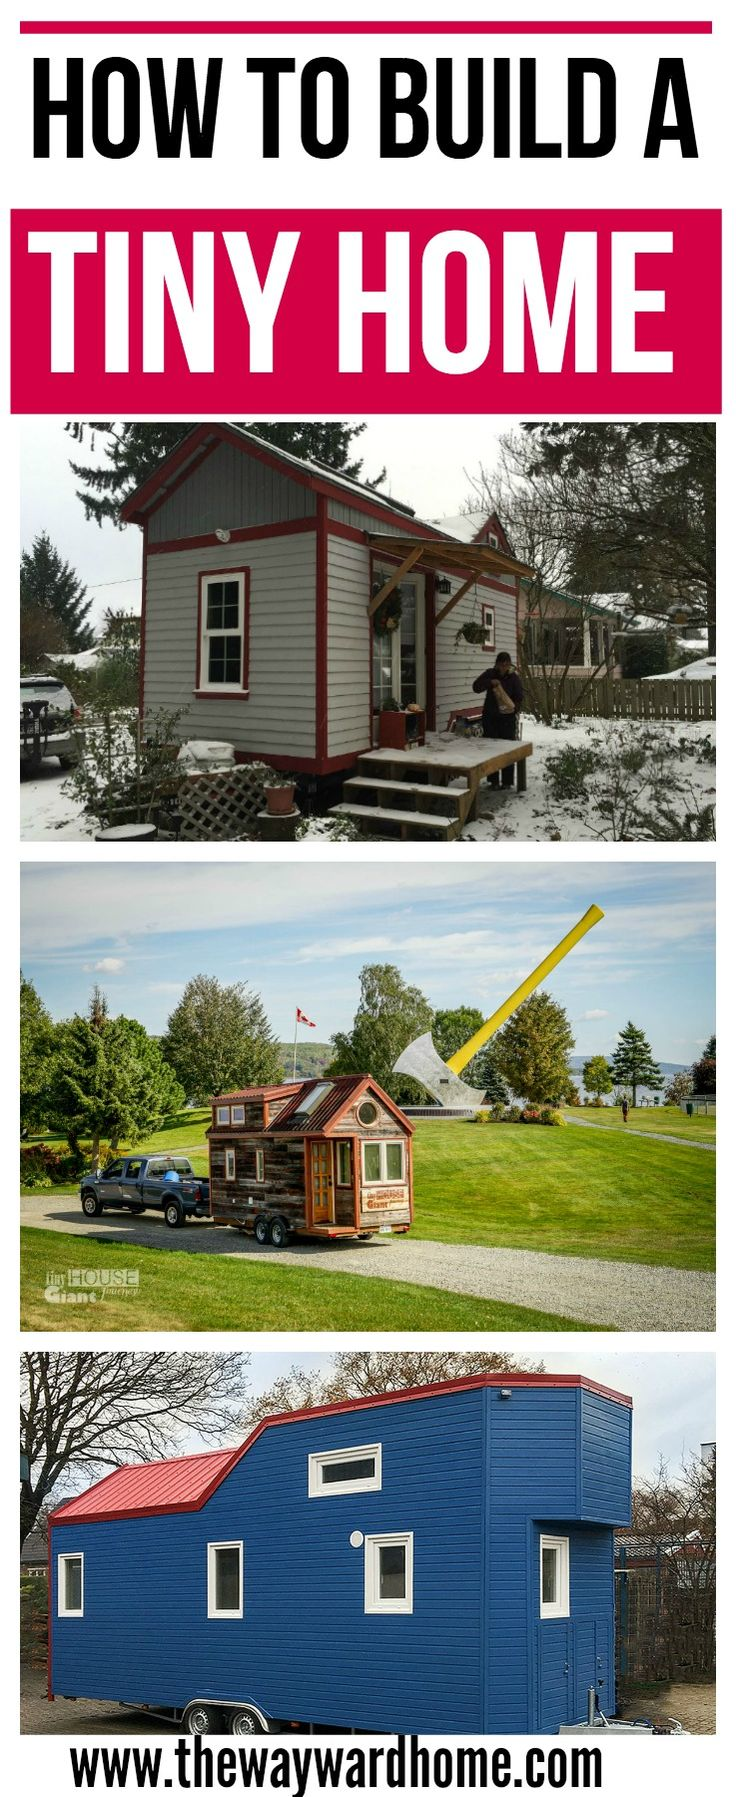 How to build a tiny home. Where to park a tiny home. And should you build a tiny house yourself or hire someone. #tinyhomes #tinyhomeonwheels #minimalism via @thewaywardhome